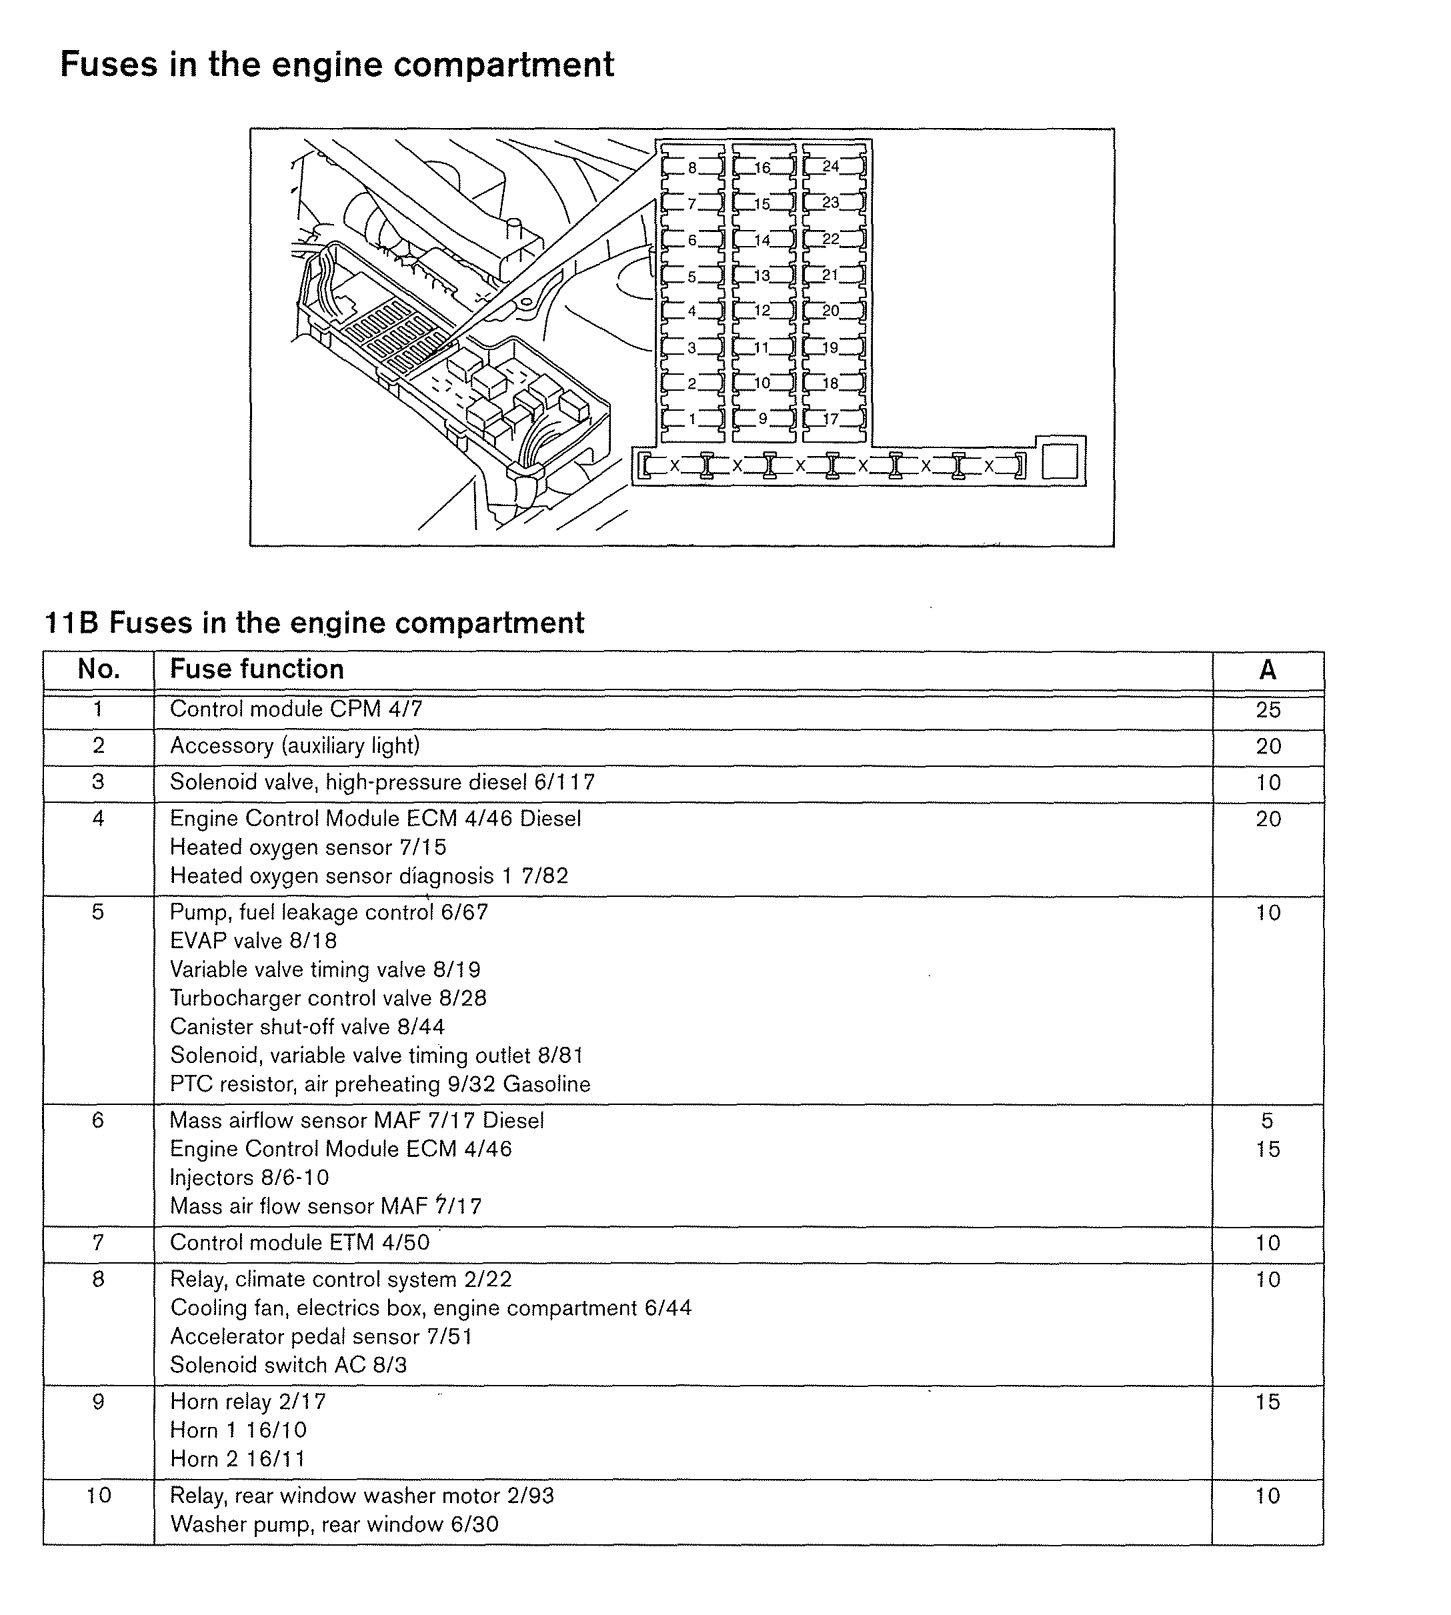 2001 volvo wiring diagrams volvo fuse box v70 wiring diagrams show  volvo fuse box v70 wiring diagrams show